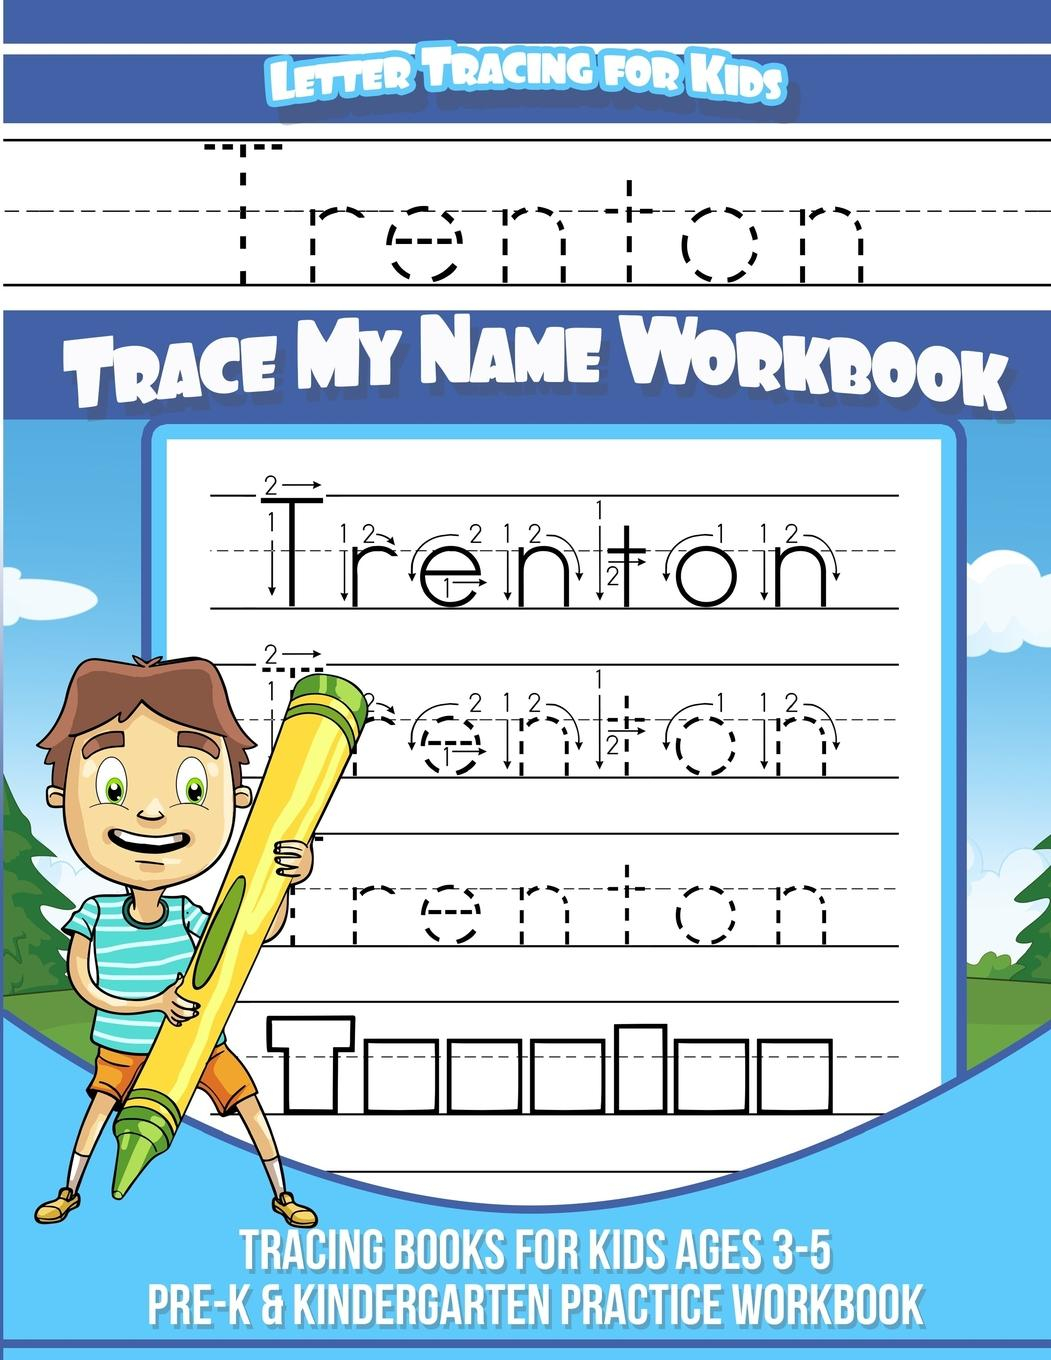 Trenton Letter Tracing For Kids Trace My Name Workbook : Tracing Books For  Kids Ages 3 - 5 Pre-K & Kindergarten Practice Workbook - Walmart intended for Alphabet Tracing Book Walmart